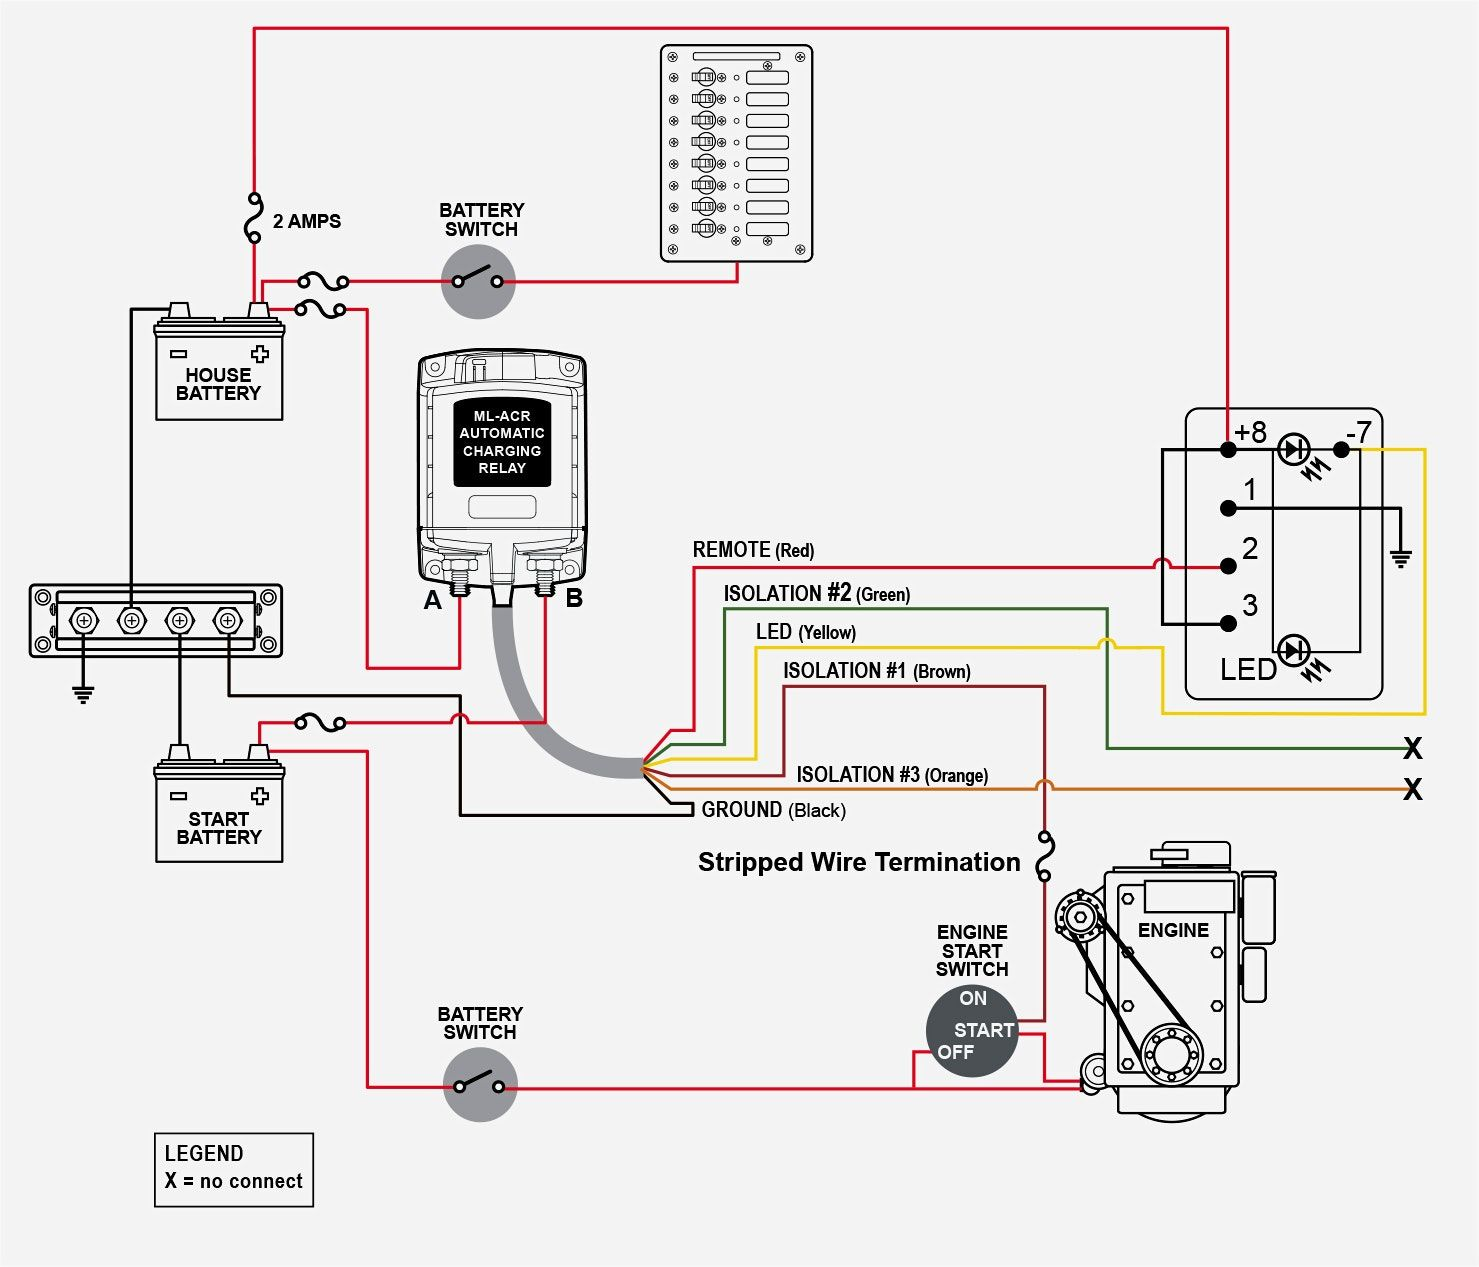 Boat Building Standards For 12V Switch Panel Wiring